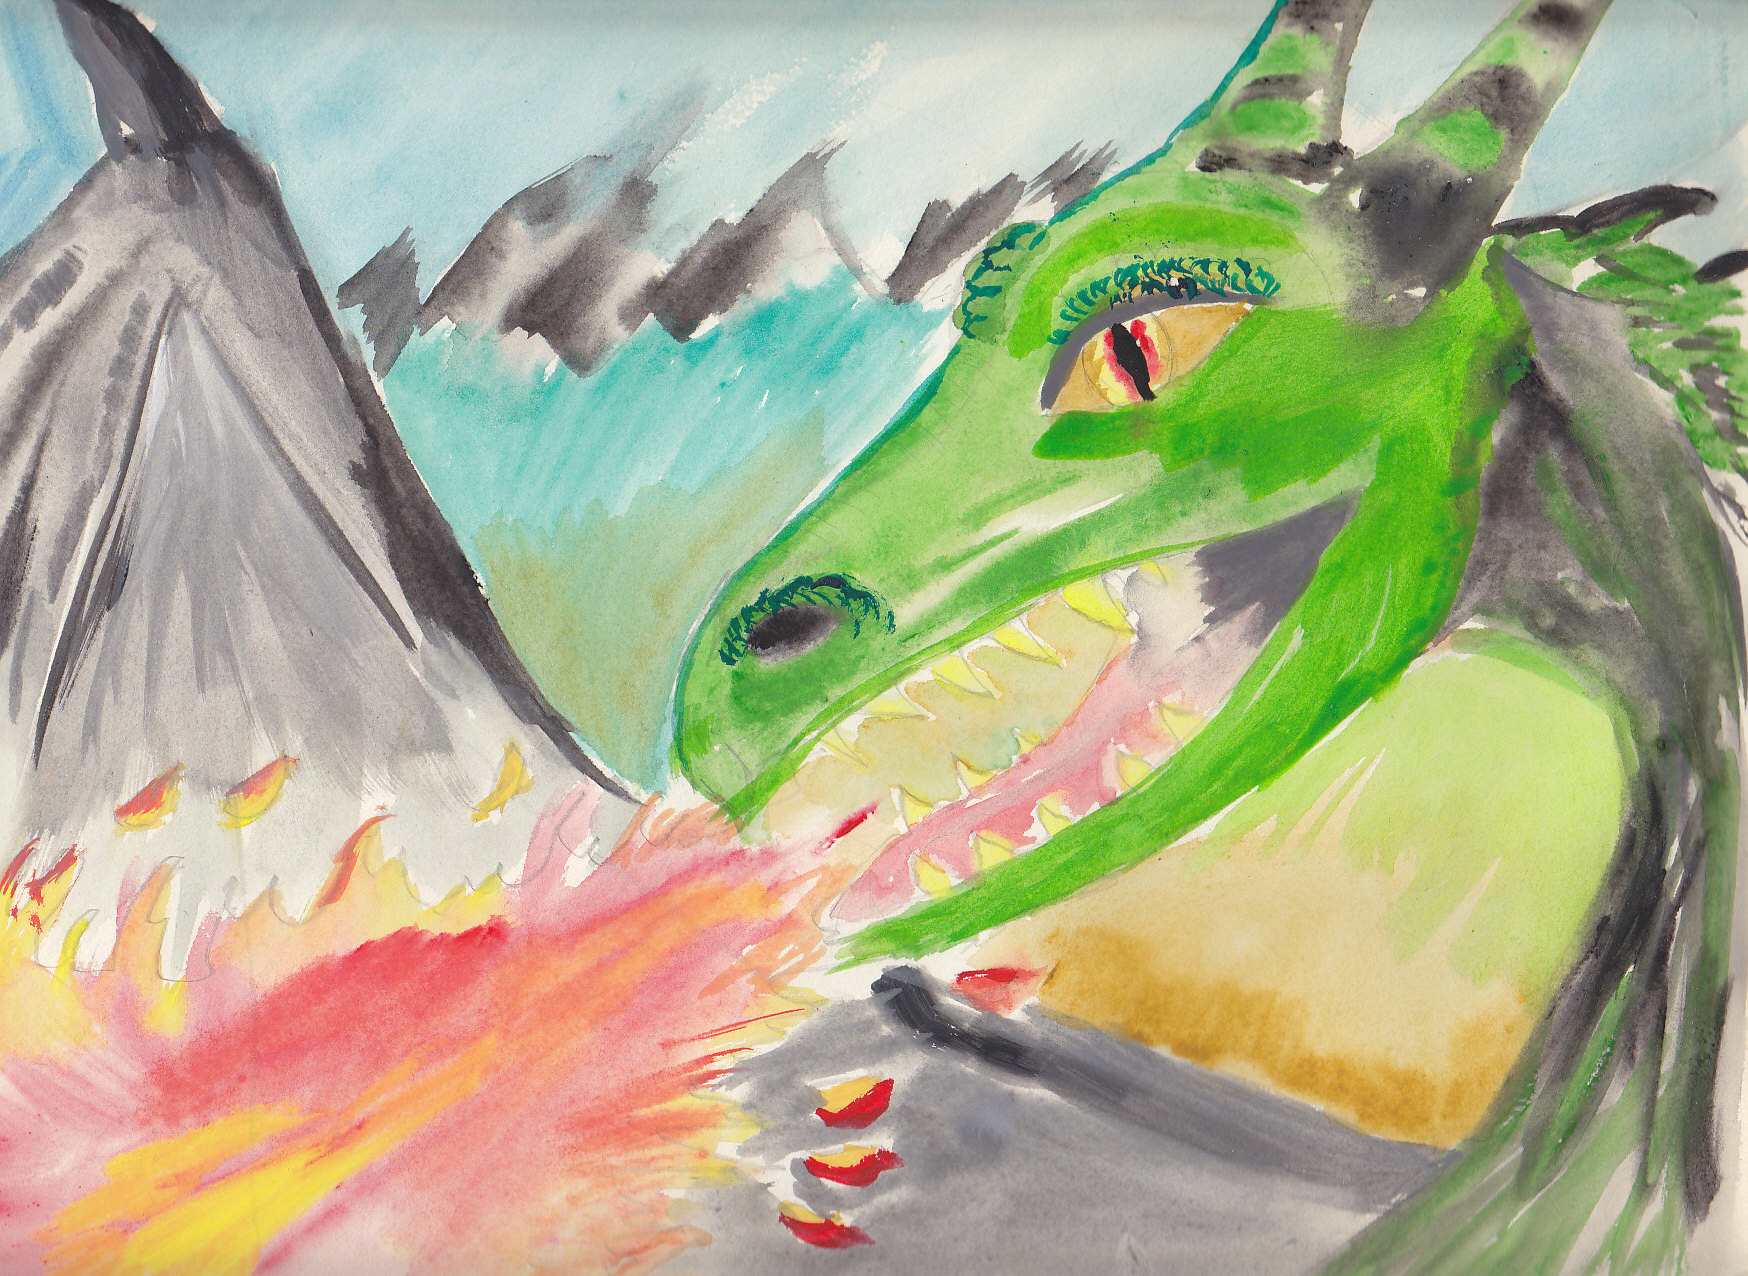 Rachel's WaterColour of Dragon before Inking